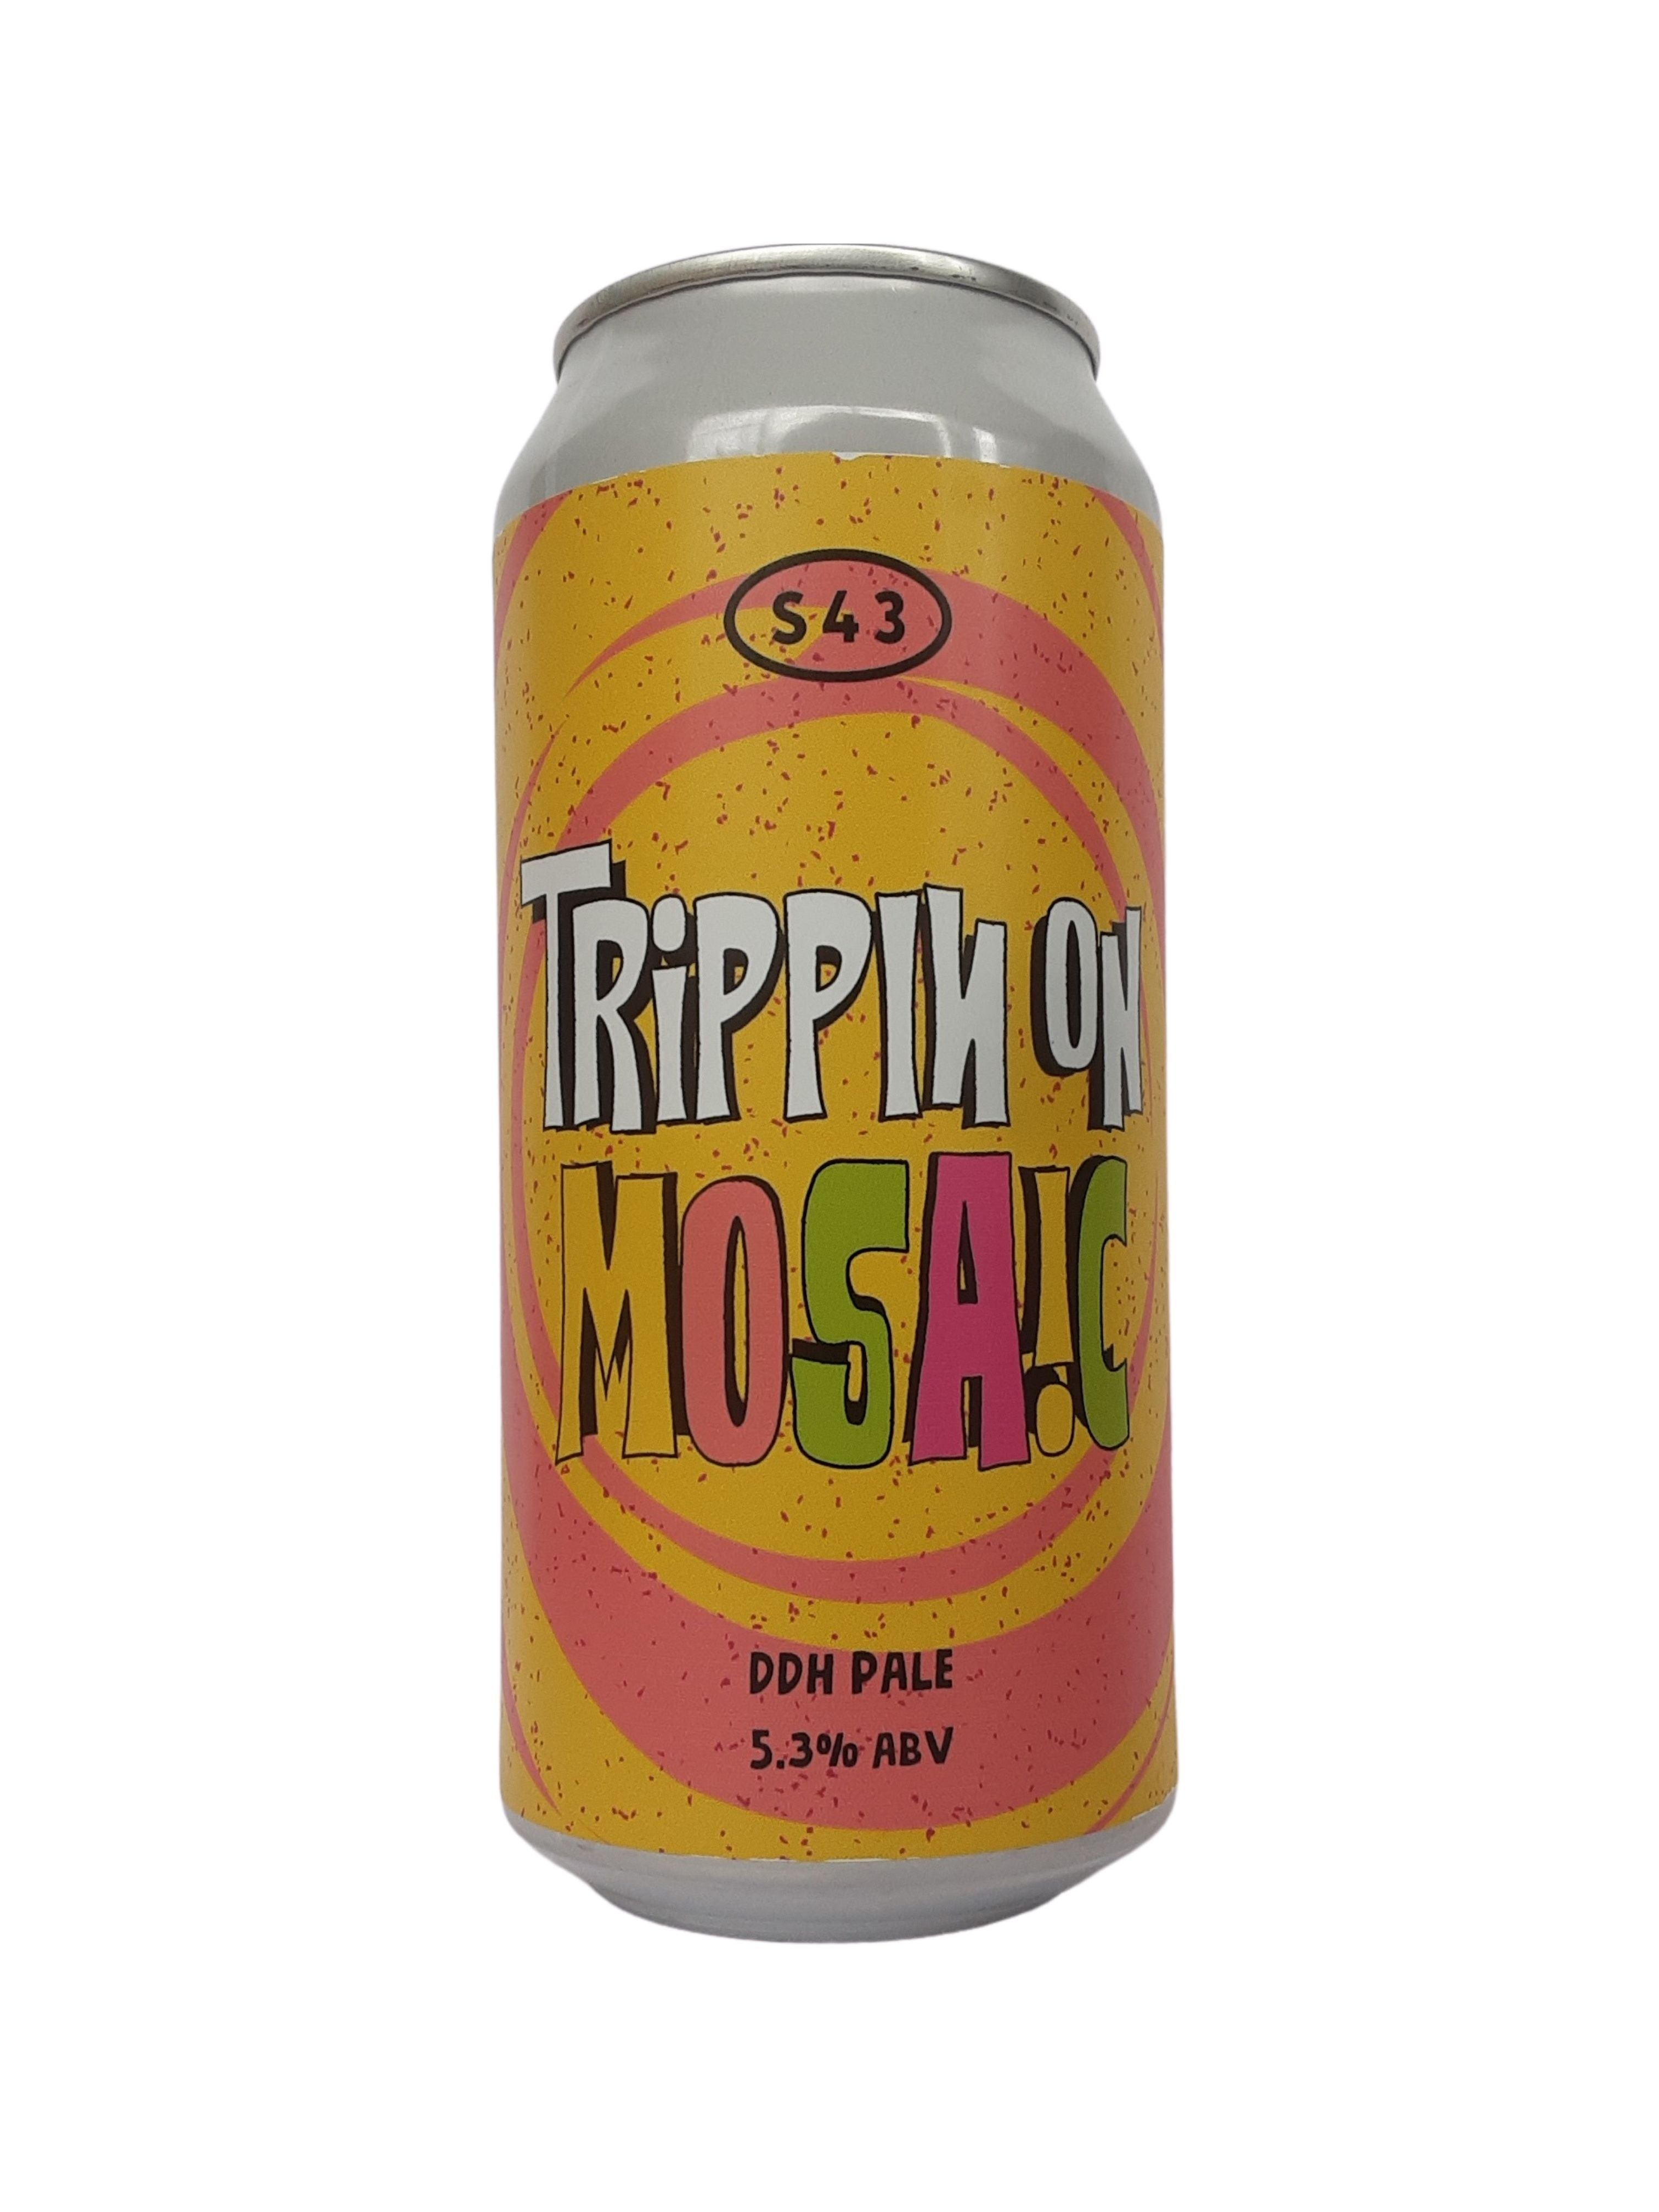 S43 - Trippin On Mosaic - DDH Pale - 5.3% (3.92 UT)